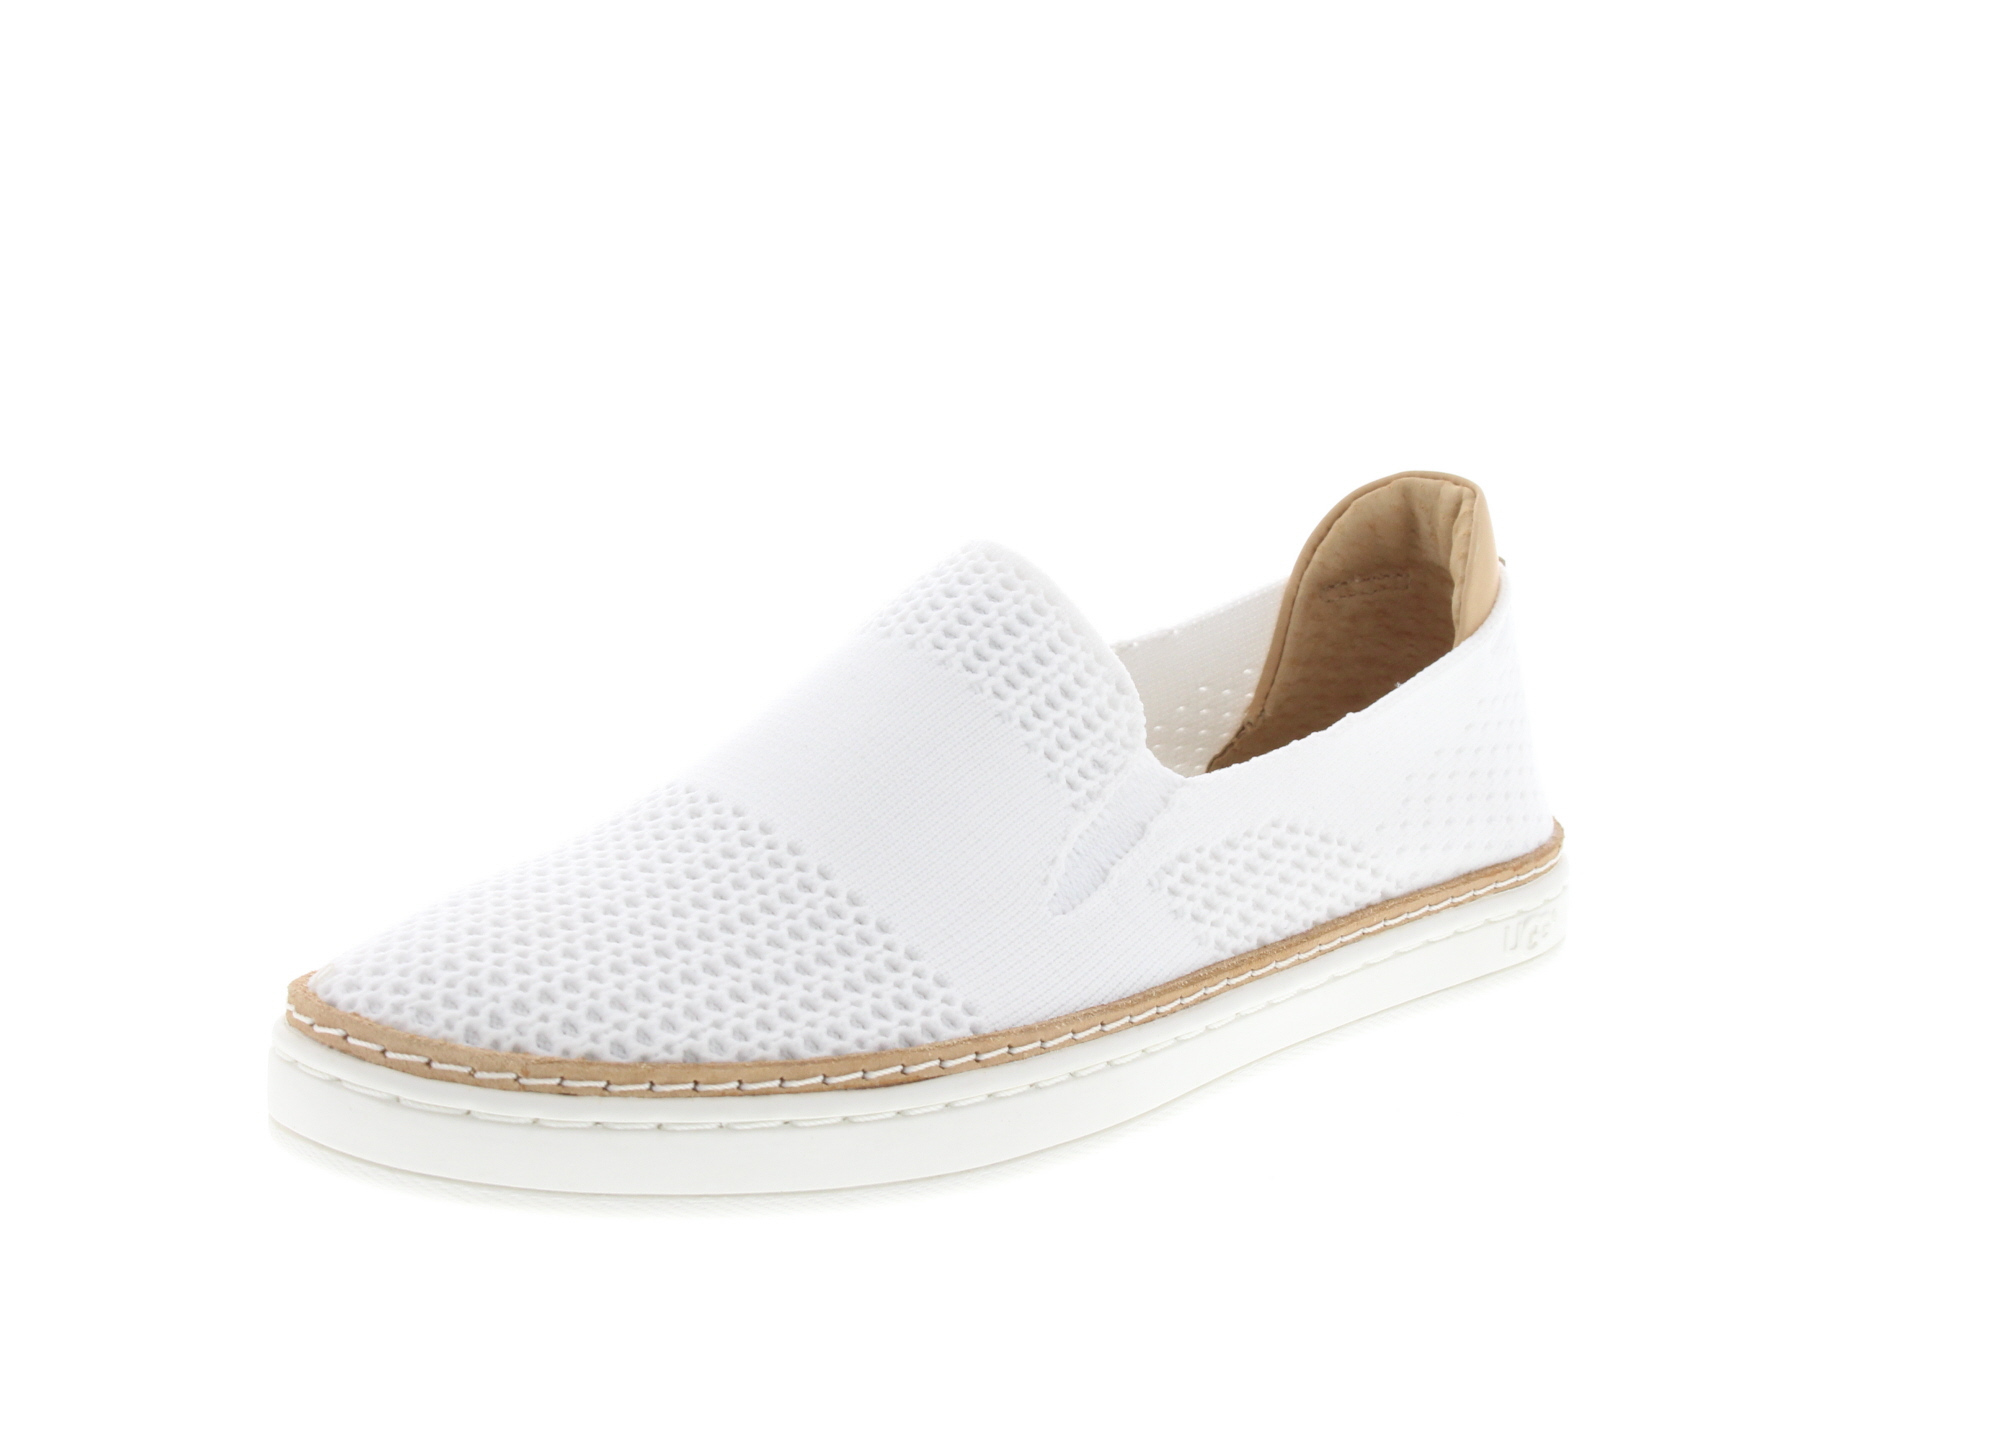 UGG Damenschuhe - Sneakers SAMMY 1016756 - white-0